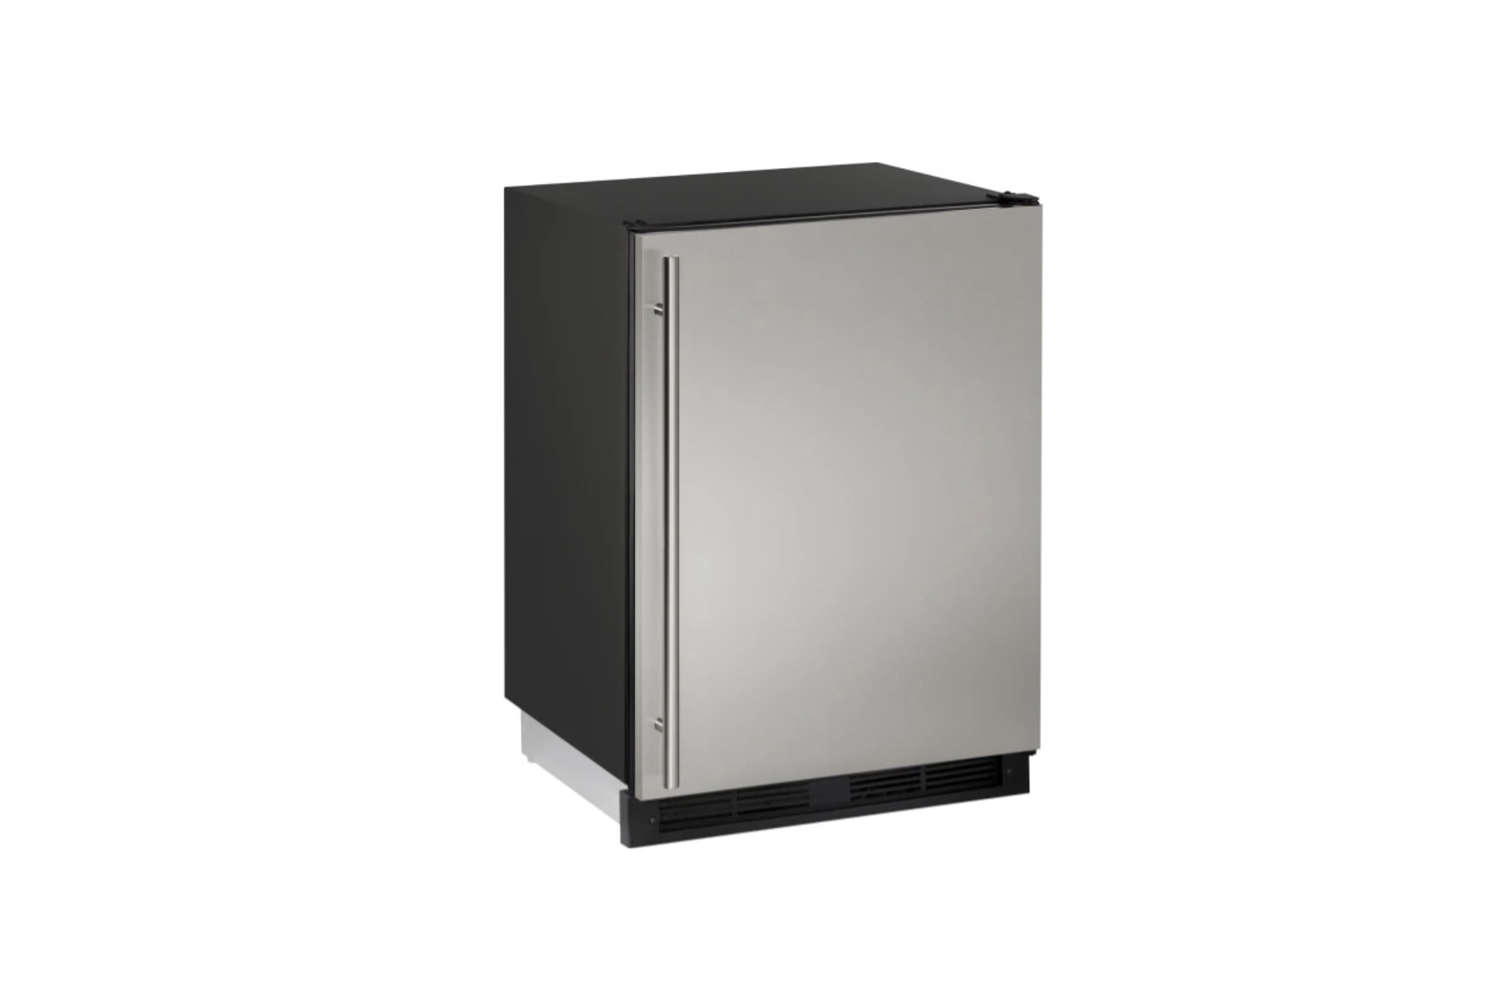 The Uline Stainless Steel Undercounter Compact Refrigerator (Uloading=